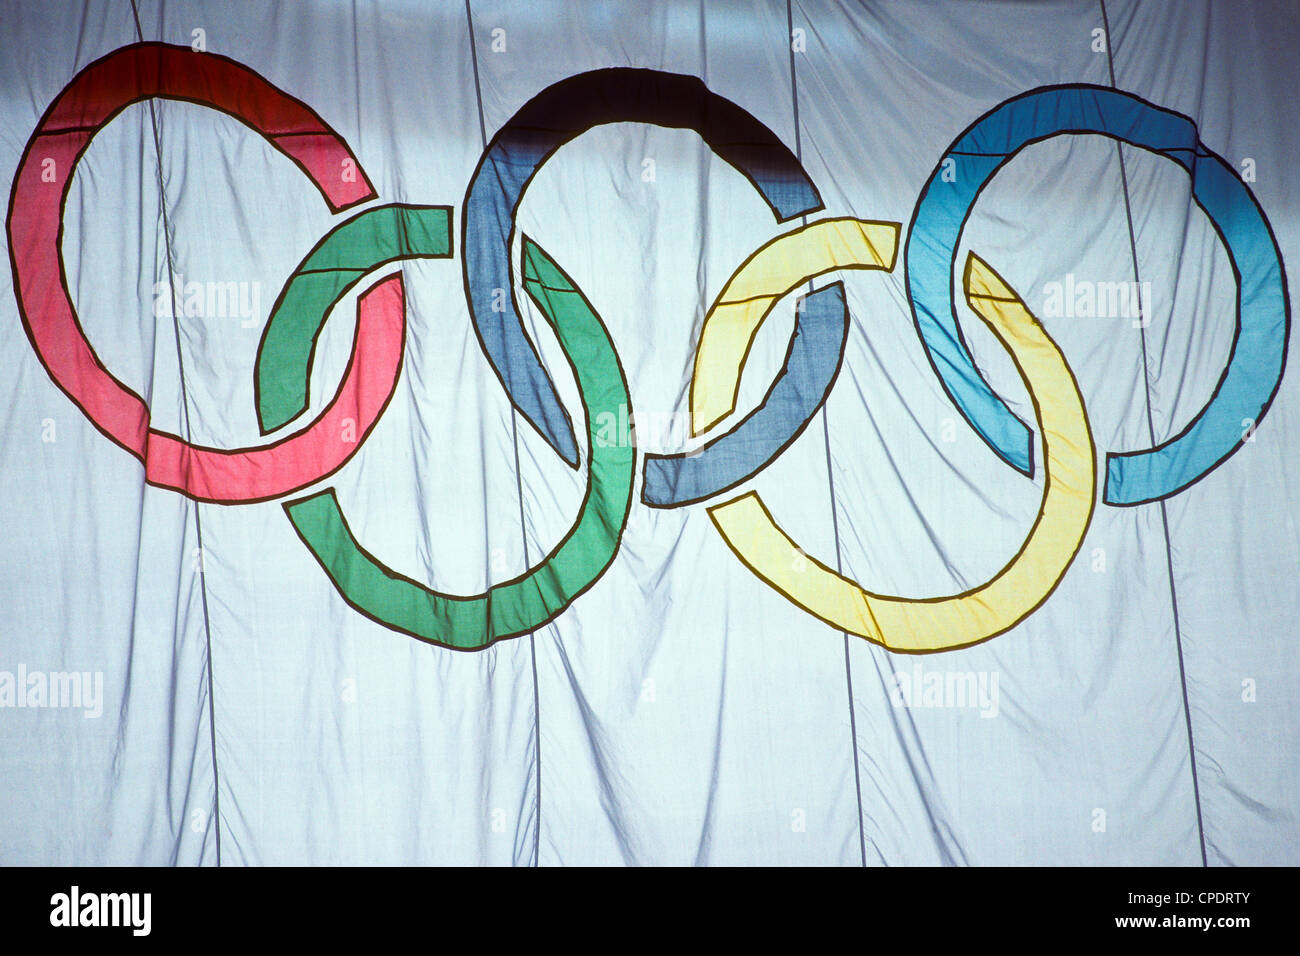 Olympic Flag at the 1988 Olympic Summer Games, Seoul Korea. - Stock Image